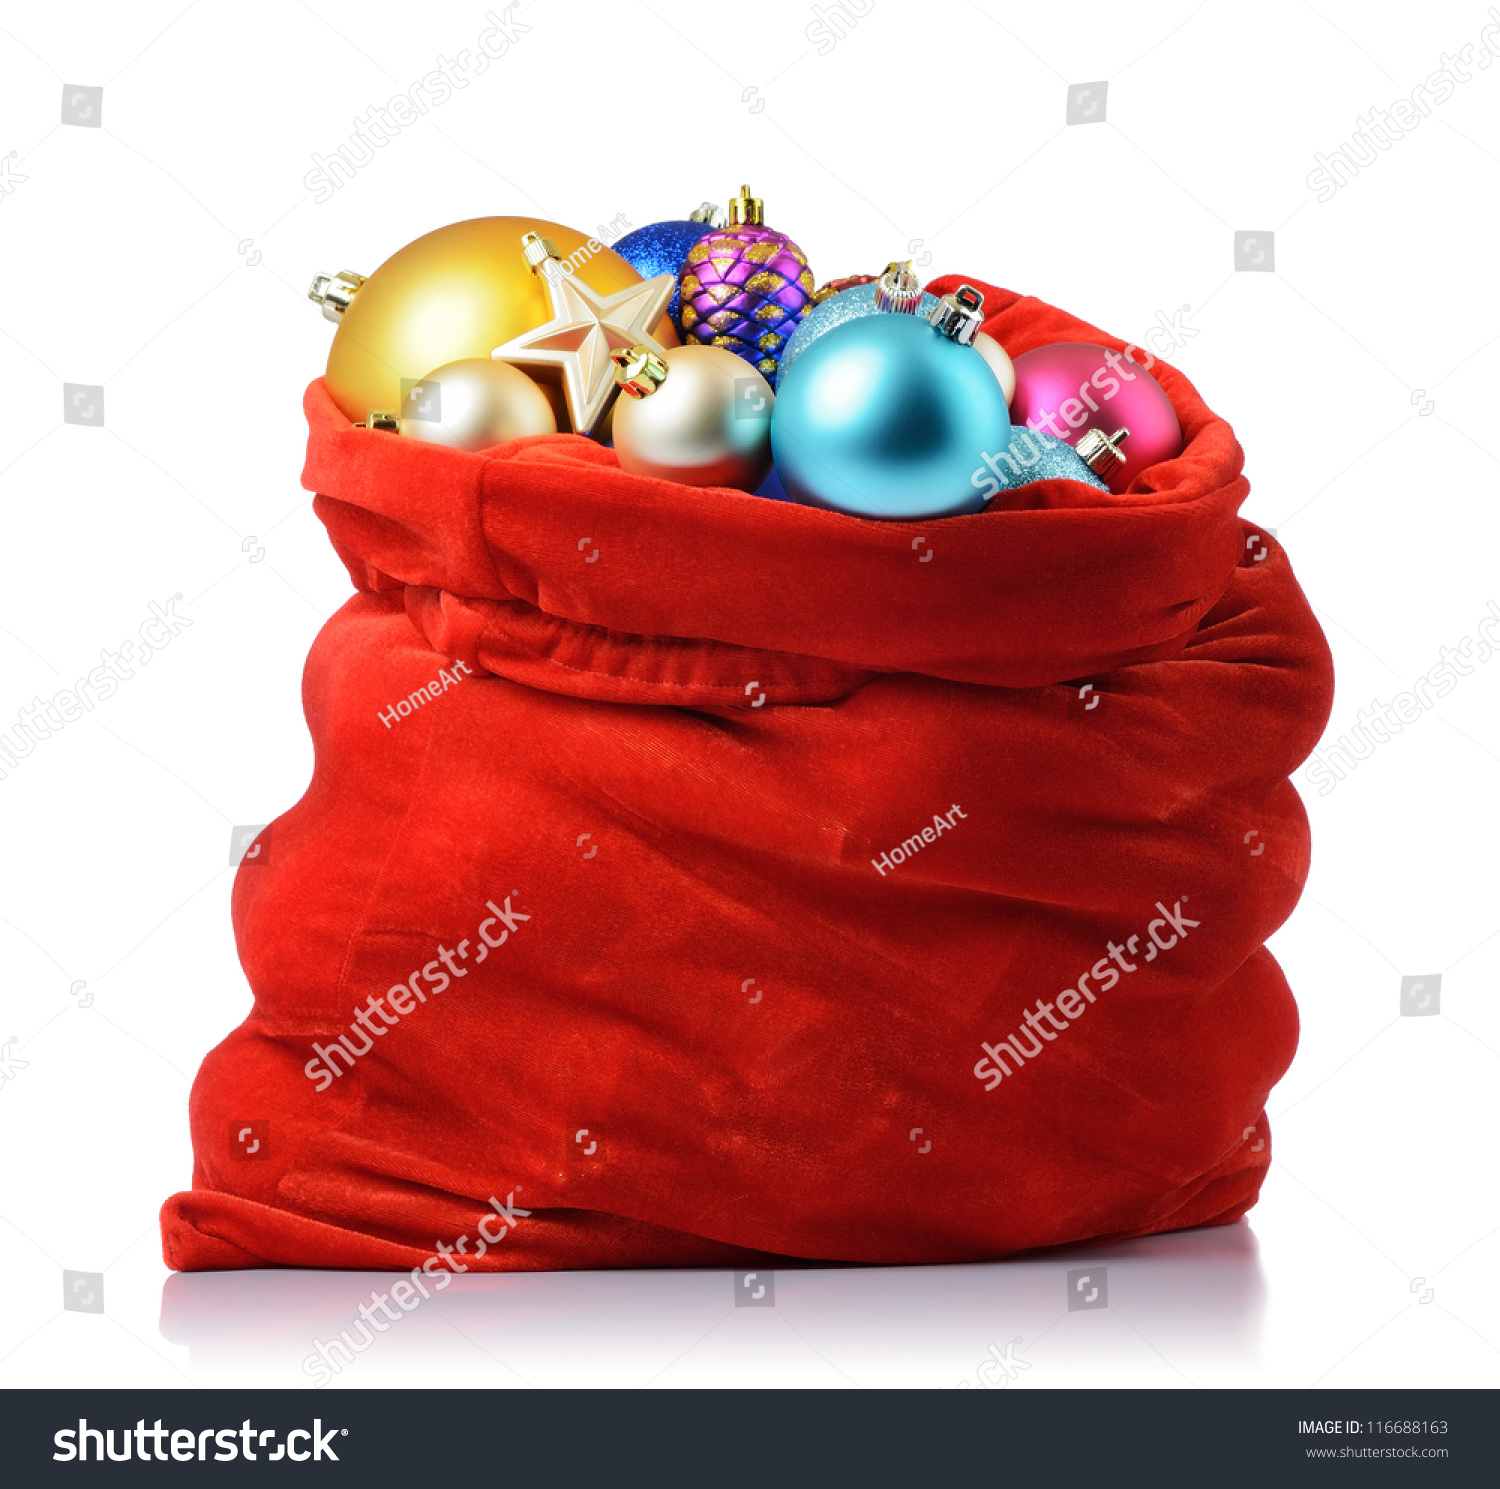 Sack Of Toys For Christmas : Santa claus red bag with christmas toys on white